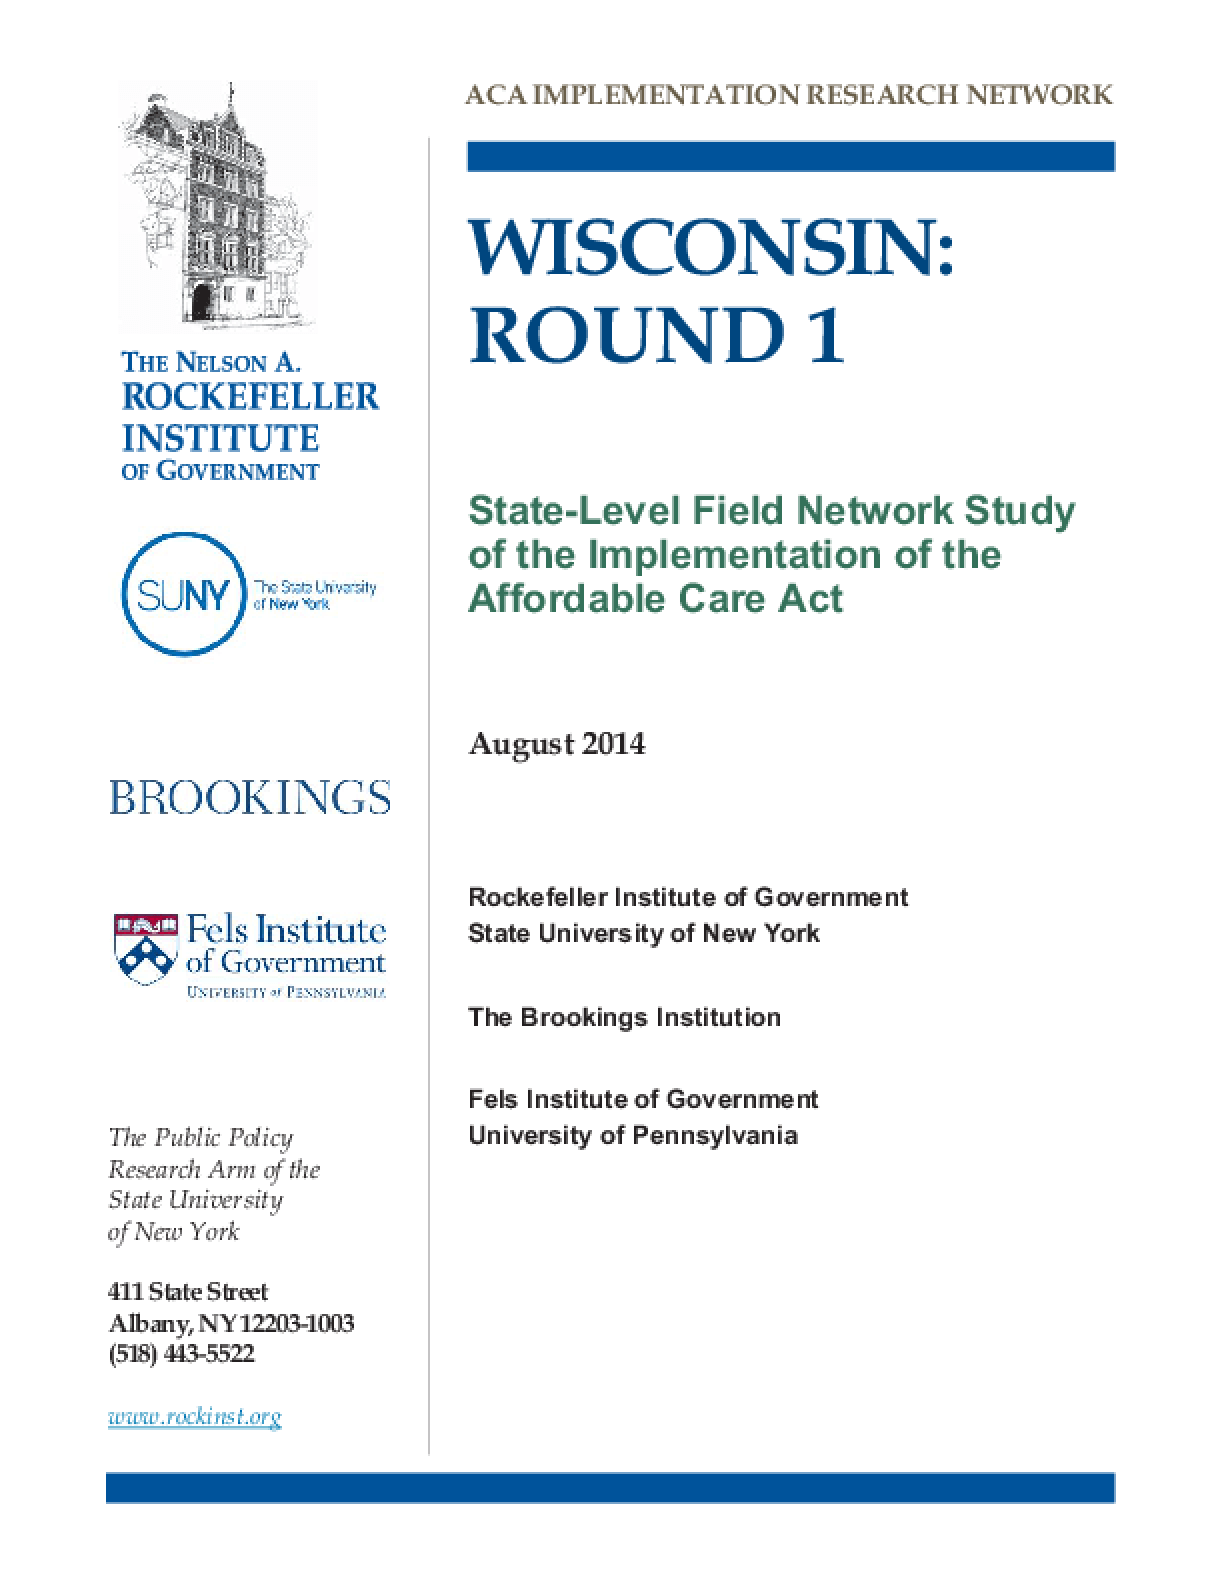 Wisconsin: Round 1 - State Level Field Network Study of the Implementation of the Affordable Care Act